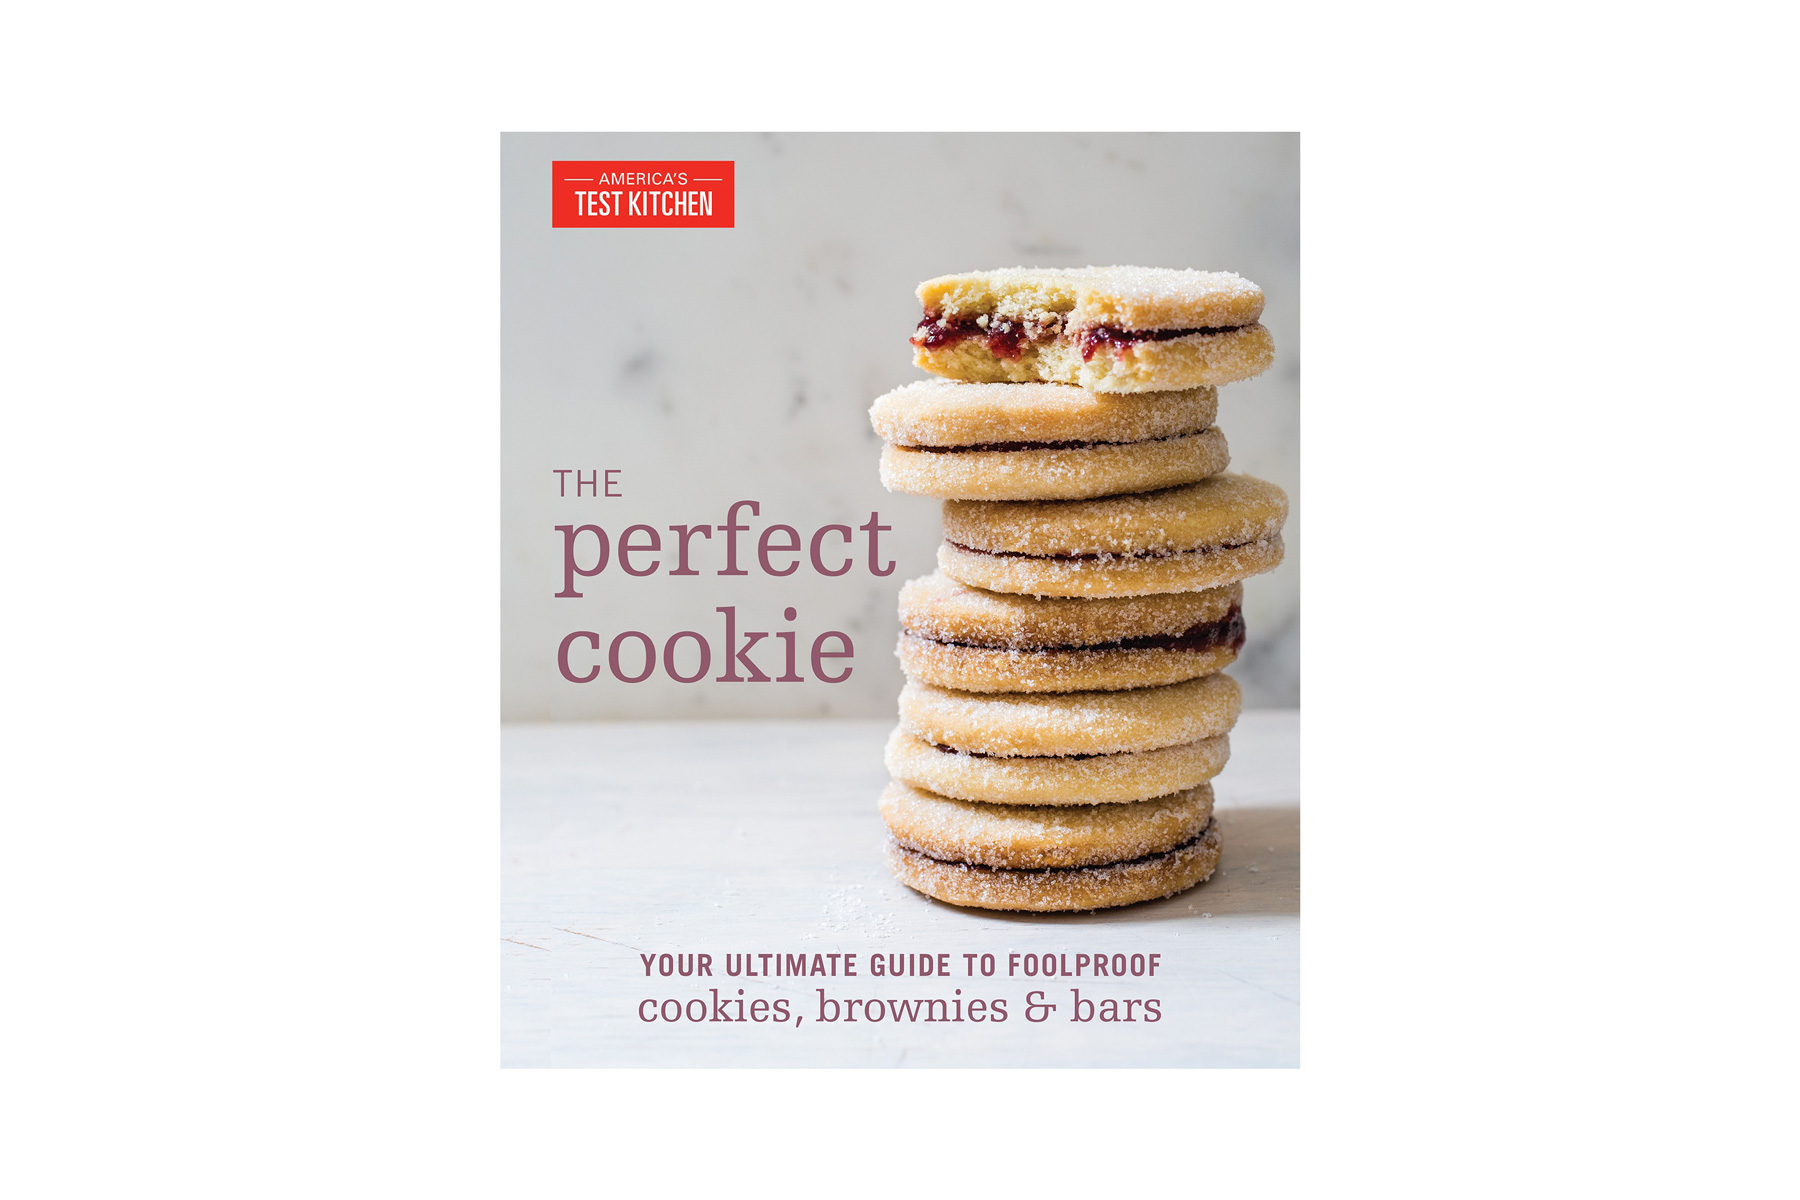 The Perfect Cookie by America's Test Kitchen